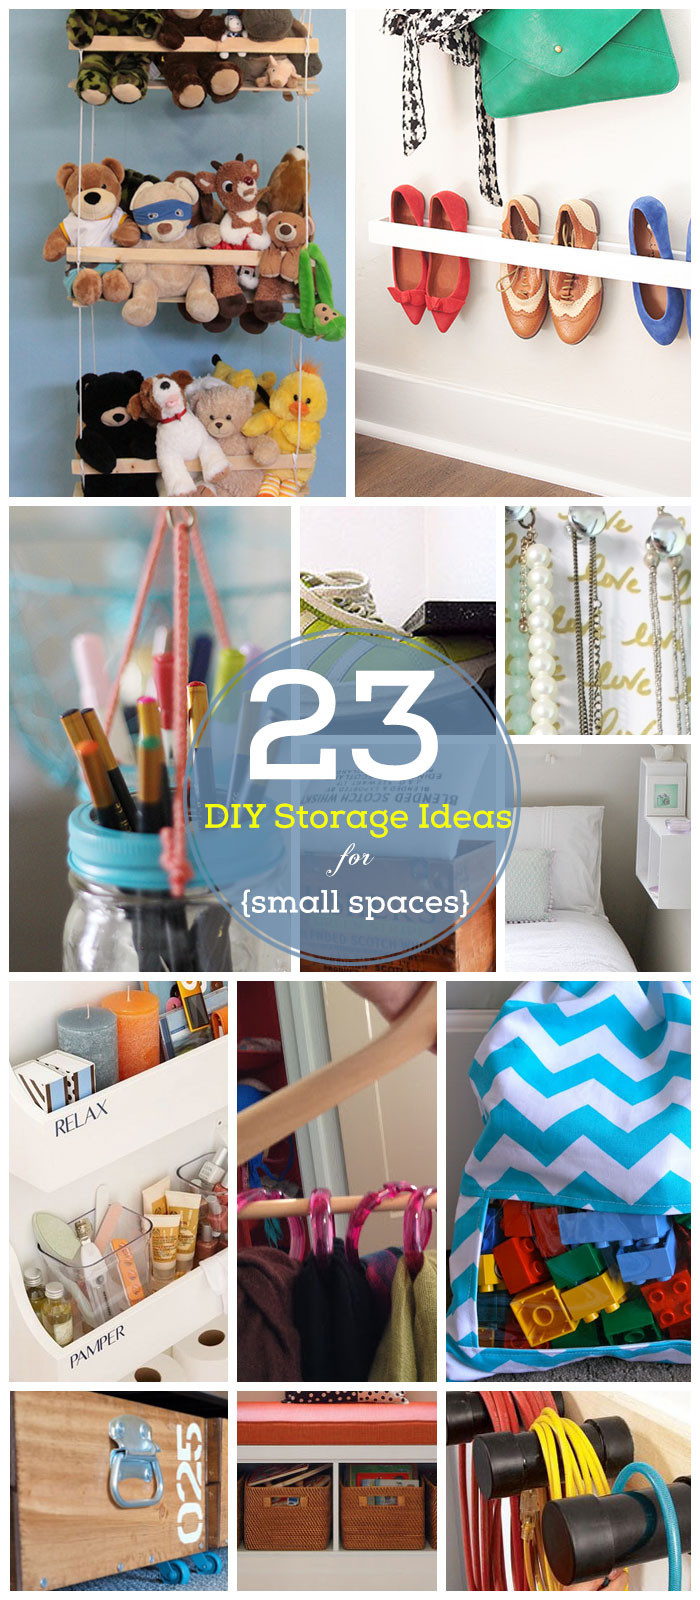 Best ideas about DIY Organization Projects . Save or Pin 32 DIY Storage Ideas for Small Spaces Now.